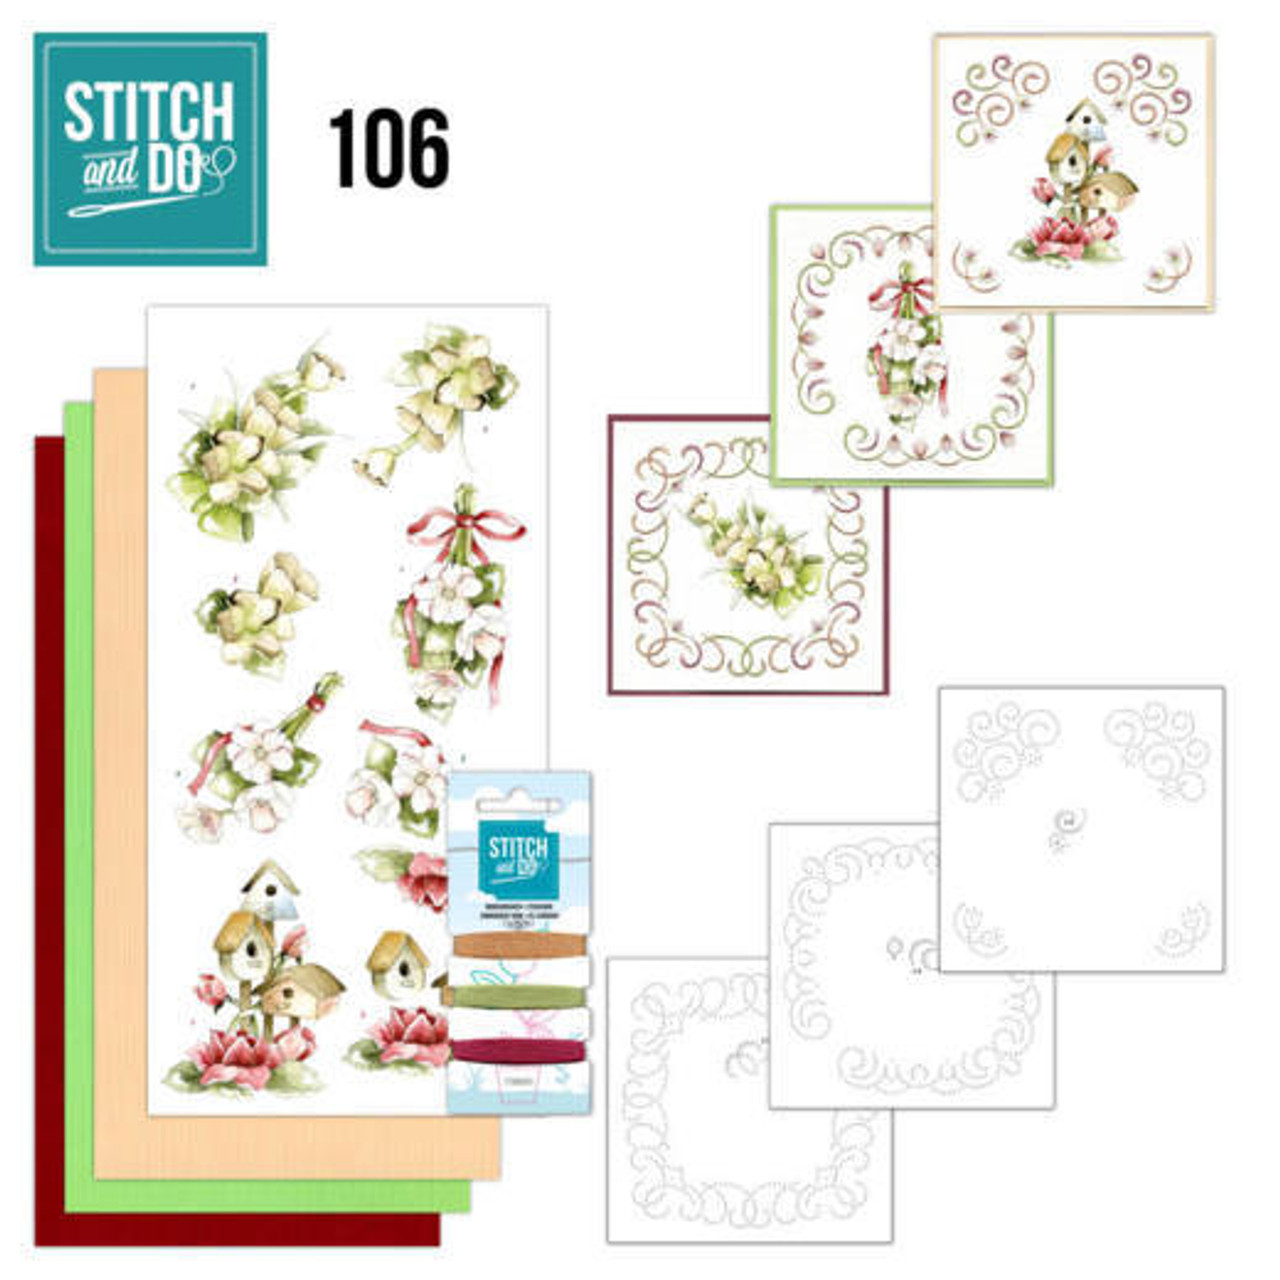 Stitch and Do 106 - Card Embroidery Kit - Pink Spring Flowers